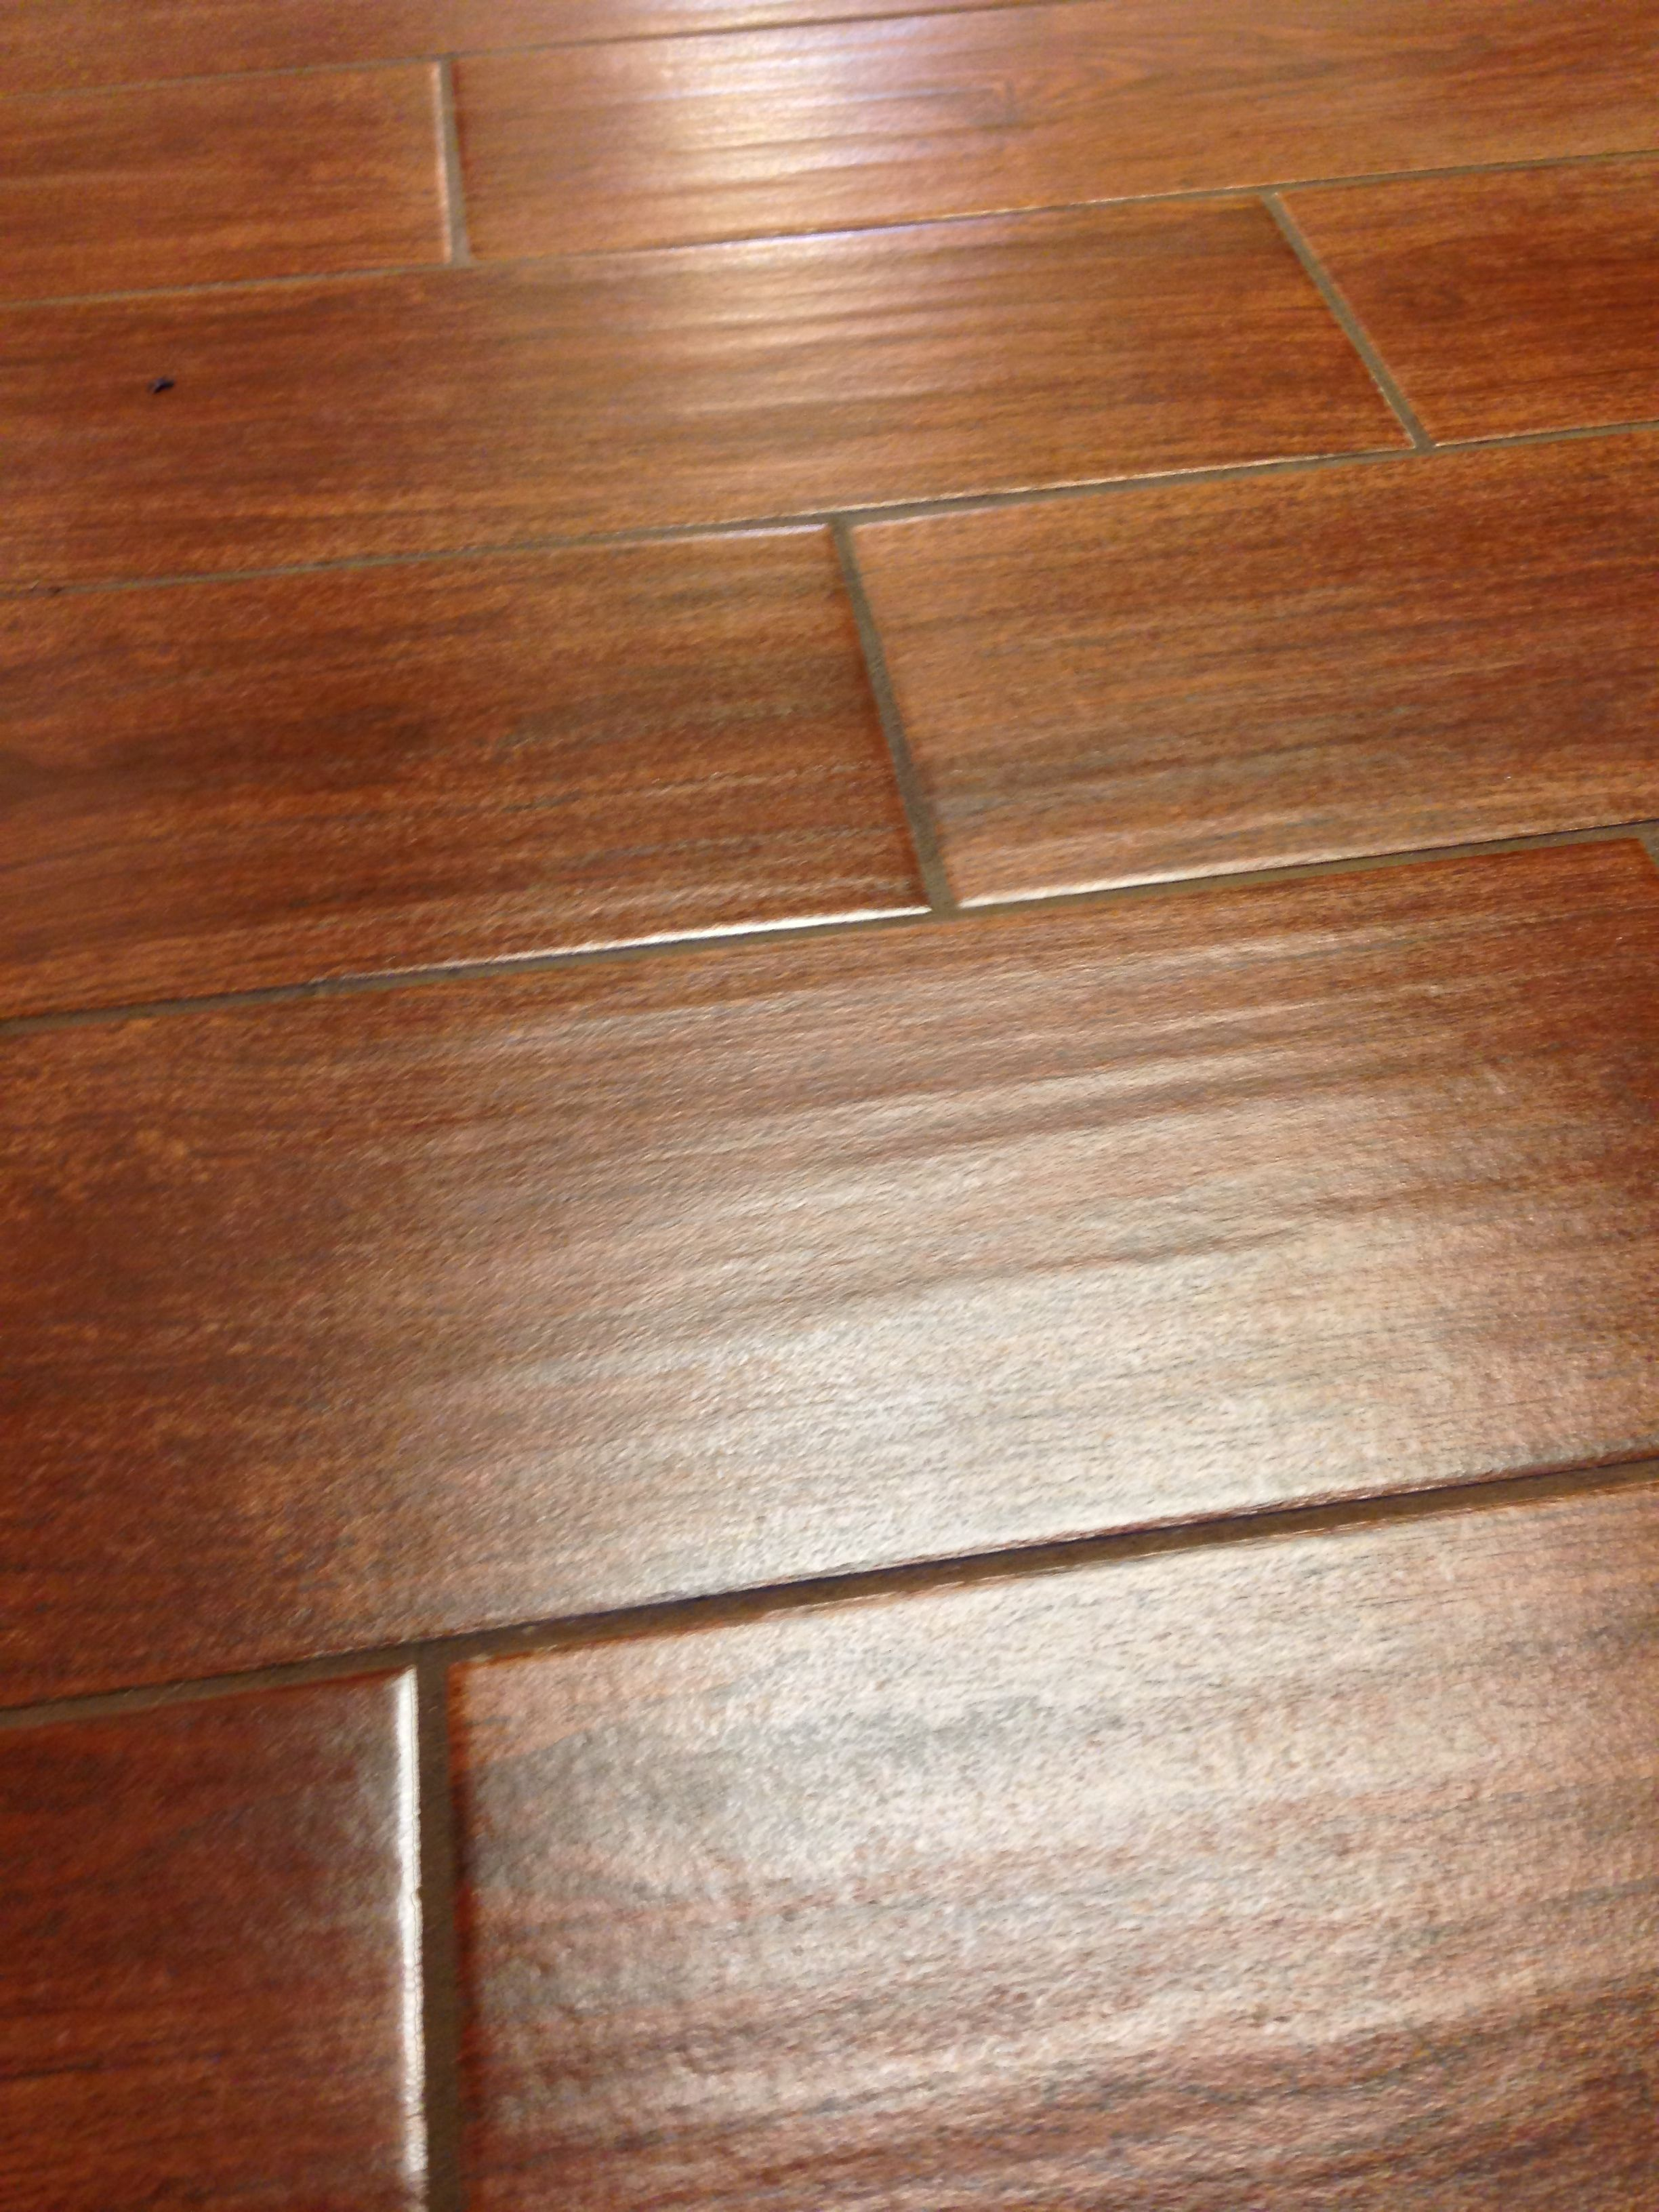 Wood look tile close up columbia missouri bathroom remodel tile wood look tile close up dailygadgetfo Choice Image